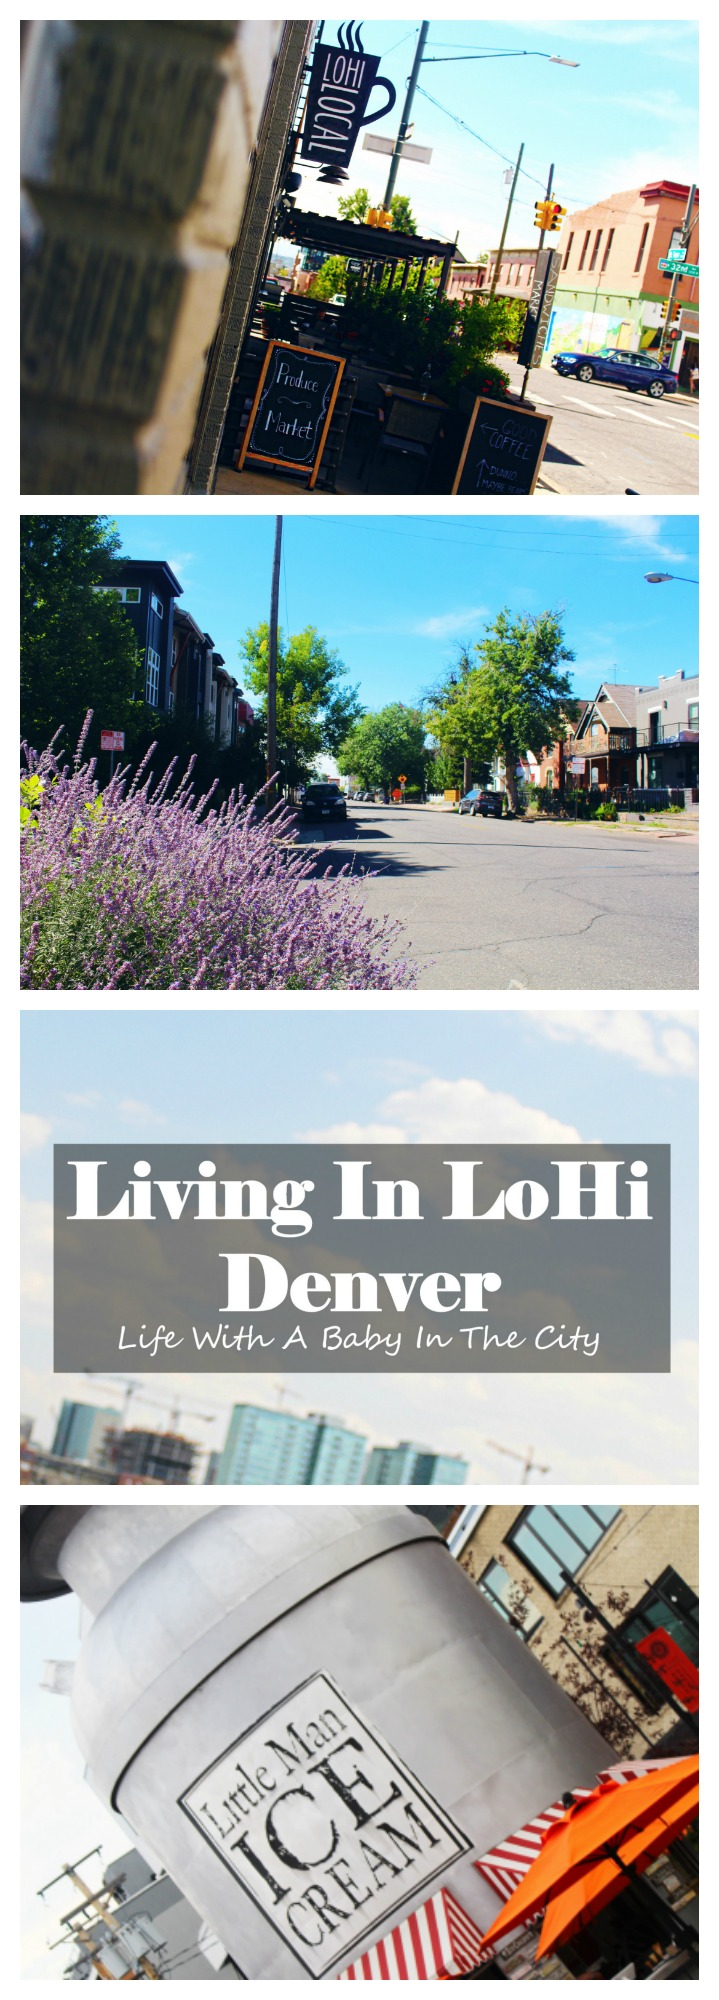 living-in-lohi-denver-highlands.jpg